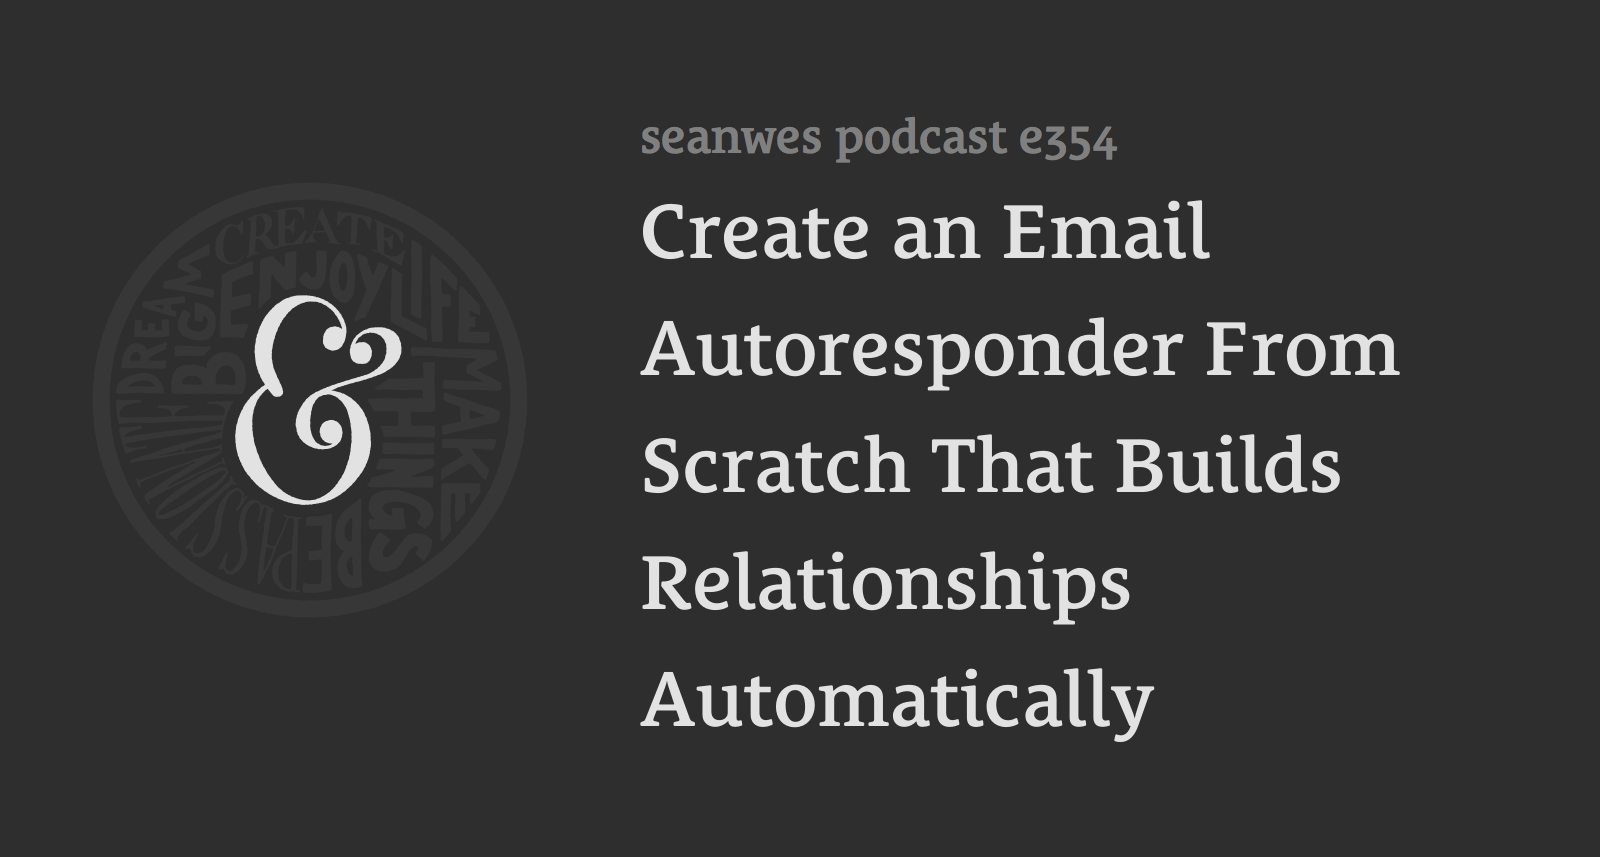 Create an Email Autoresponder From Scratch That Builds Relationships Automatically